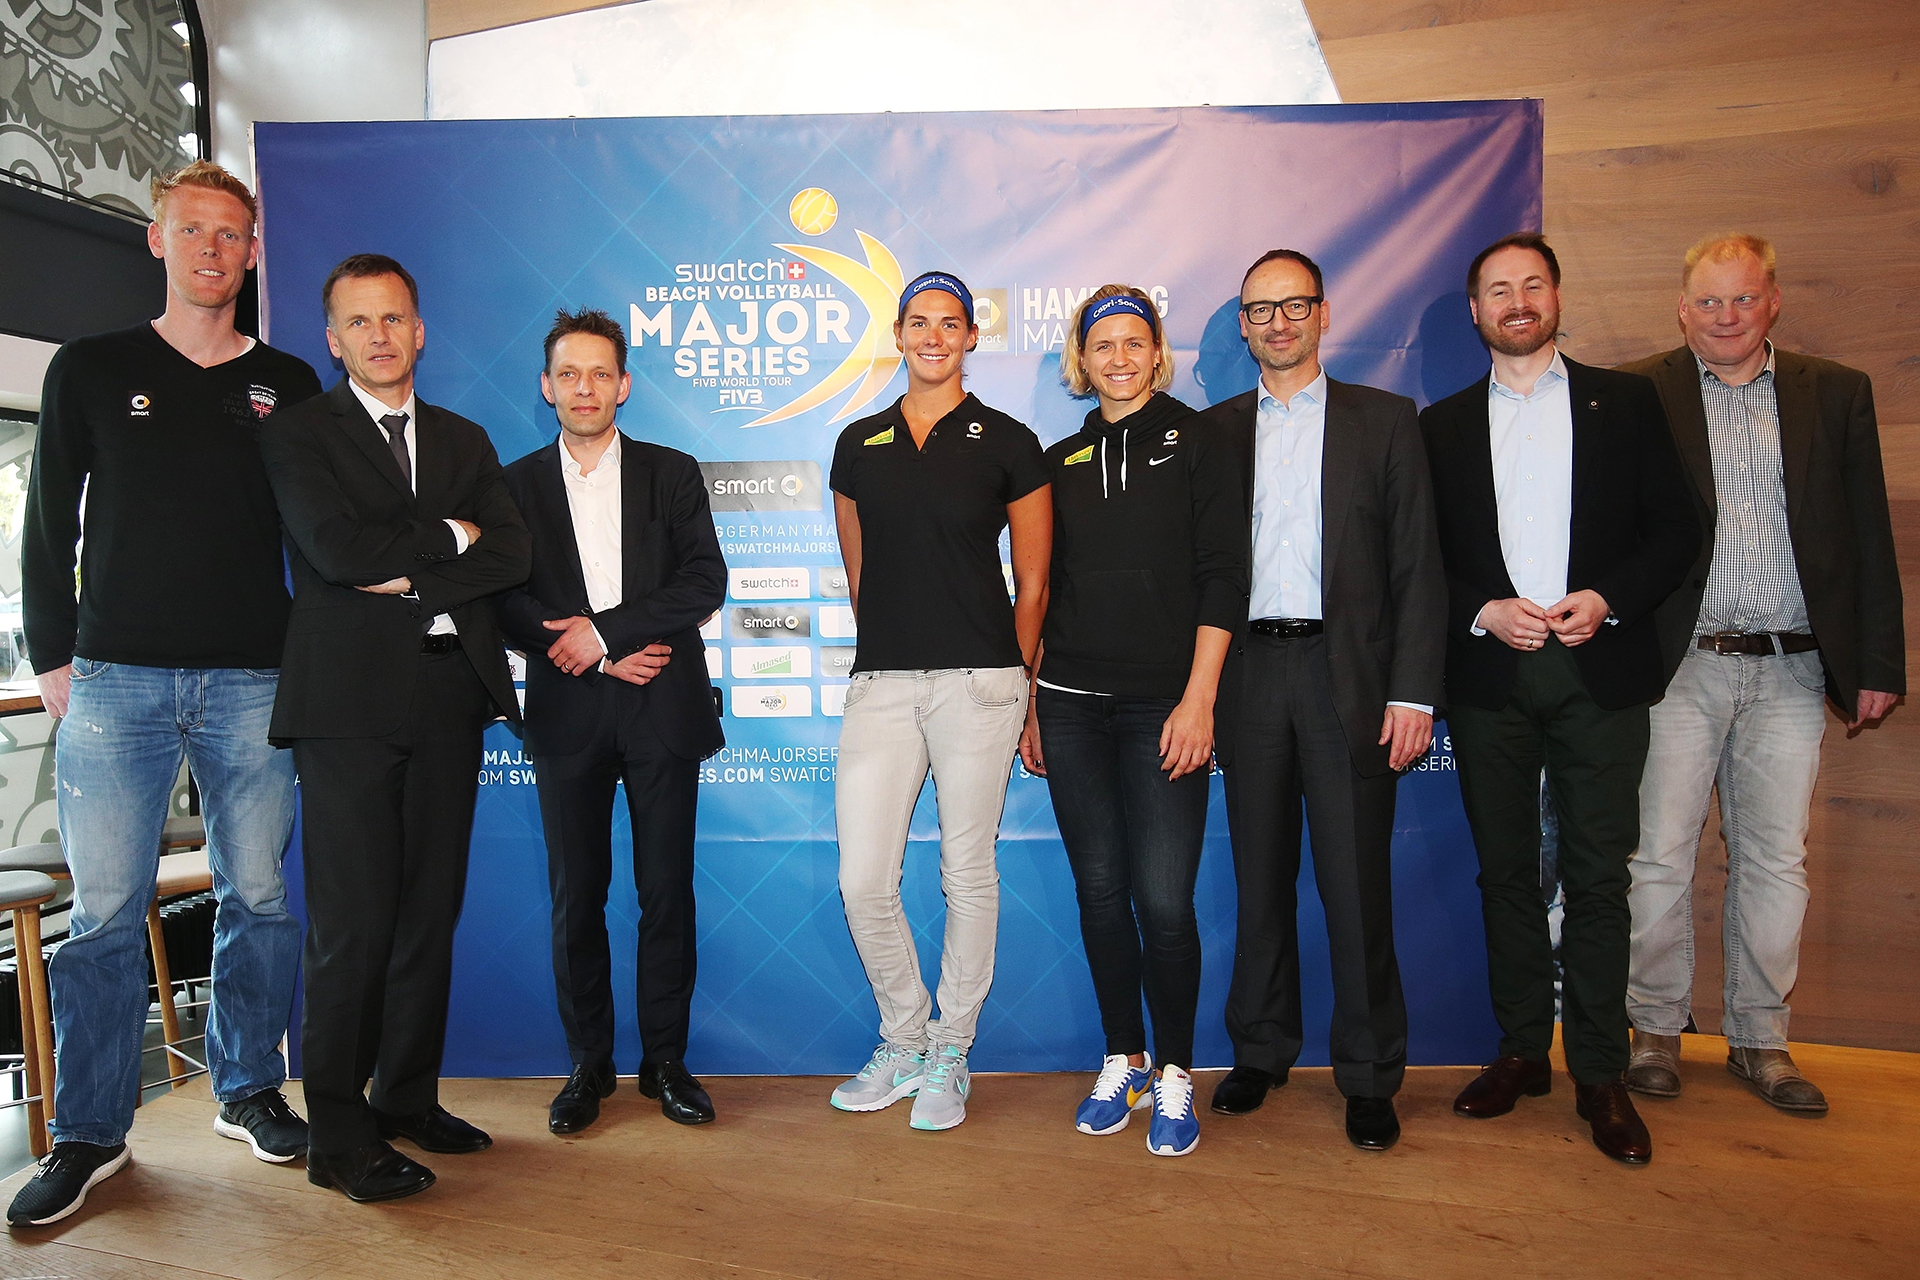 The panel of the press conference at the Mercedes me store in Hamburg: (from left to right) Jonas Reckermann (Olympic gold medallist of 2012), Christoph Holstein (Hamburg Representative Department of Sports, Martin Müller (Almased Representative),  Kira Walkenhorst and Laura Ludwig, Thomas Krohne (President of German Volleyball Federation), Michael Schaller (Head of Marketing Communication & Brand Management smart) and Frank Mackerodt (Organizer smart Major Hamburg) Photo credit: Malte Christians/hochzwei